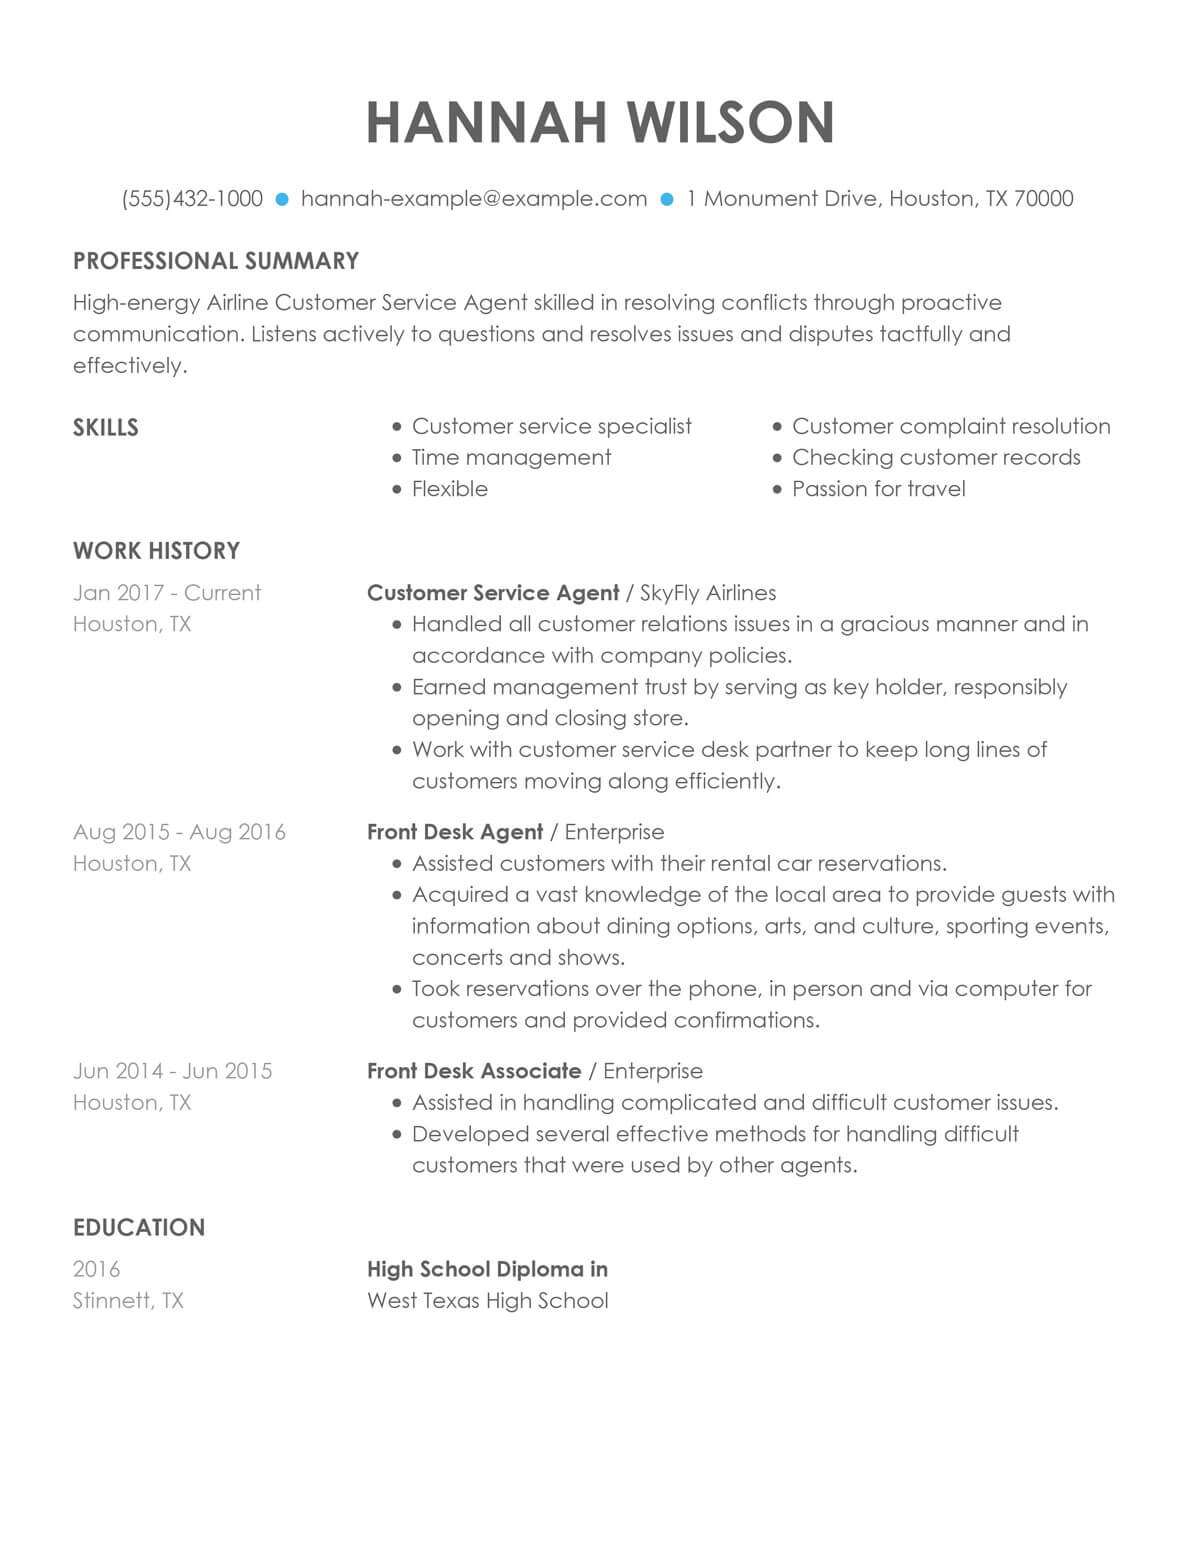 customize our customer representative resume example help service airline agent sample Resume Resume Help Customer Service